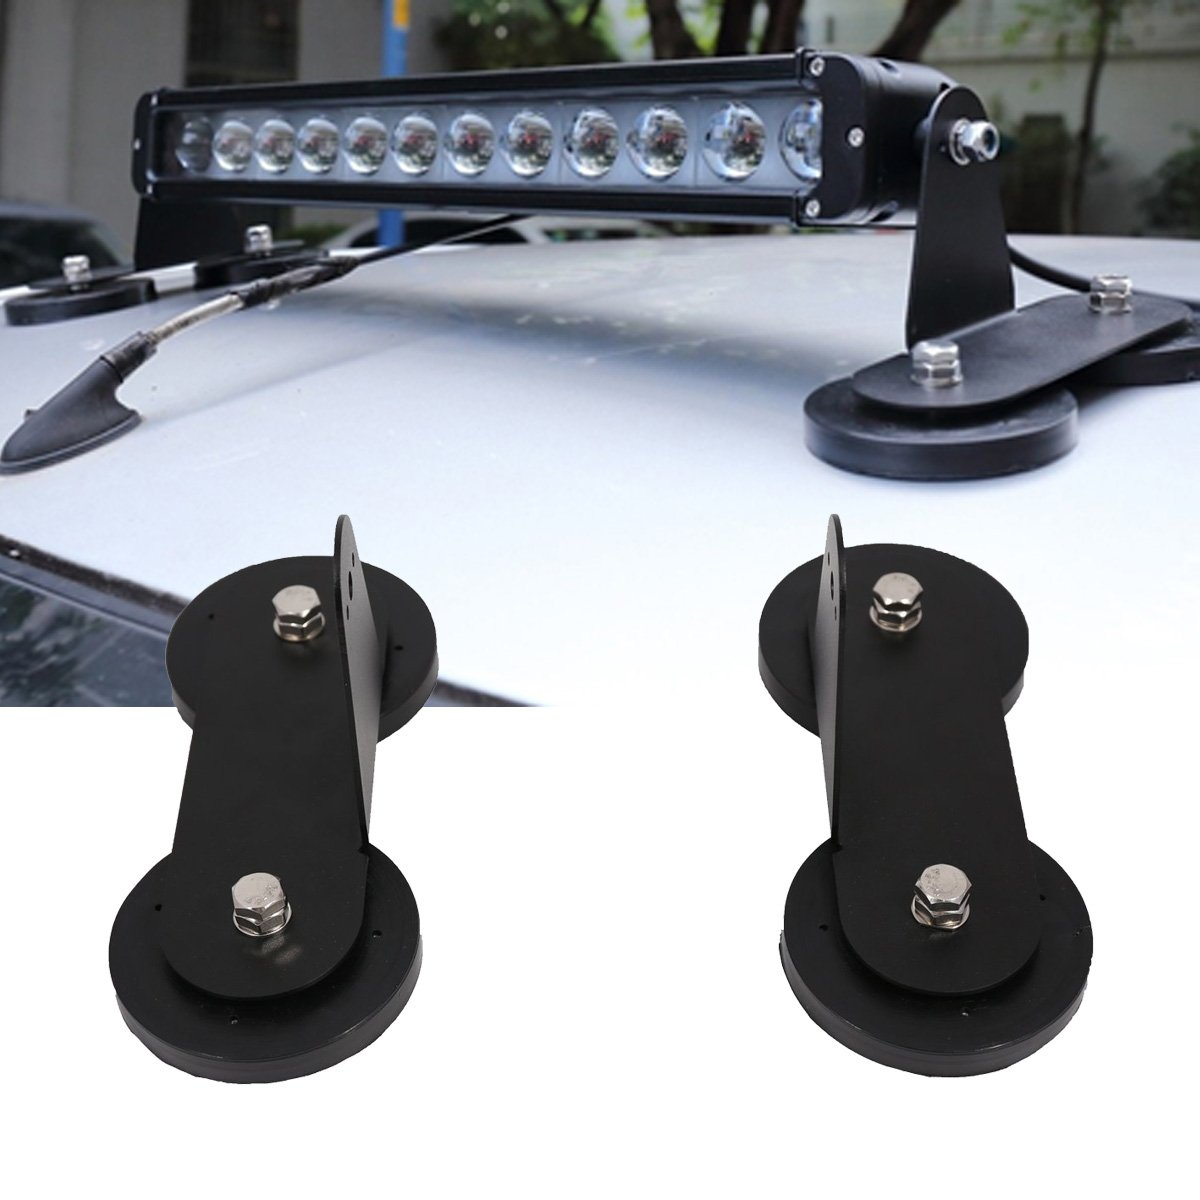 Lightronic Powerful Mount Bracket Sucker Holder Magnetic Base for Roof Led Light Bar Offroad